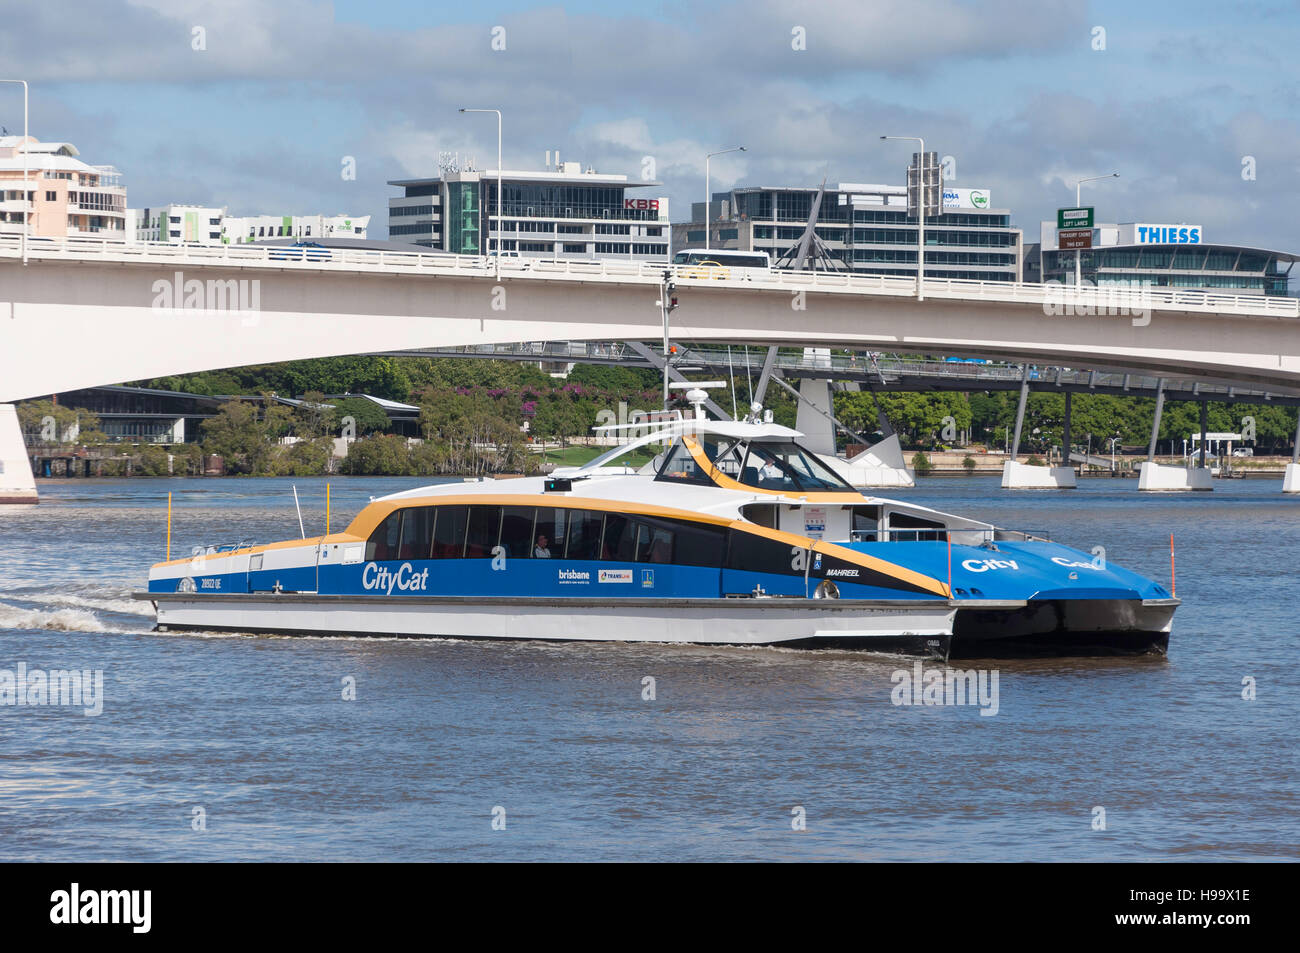 CityCat ferry boat on Brisbane River, Brisbane City, Brisbane, Queensland, AustraliaStock Photo